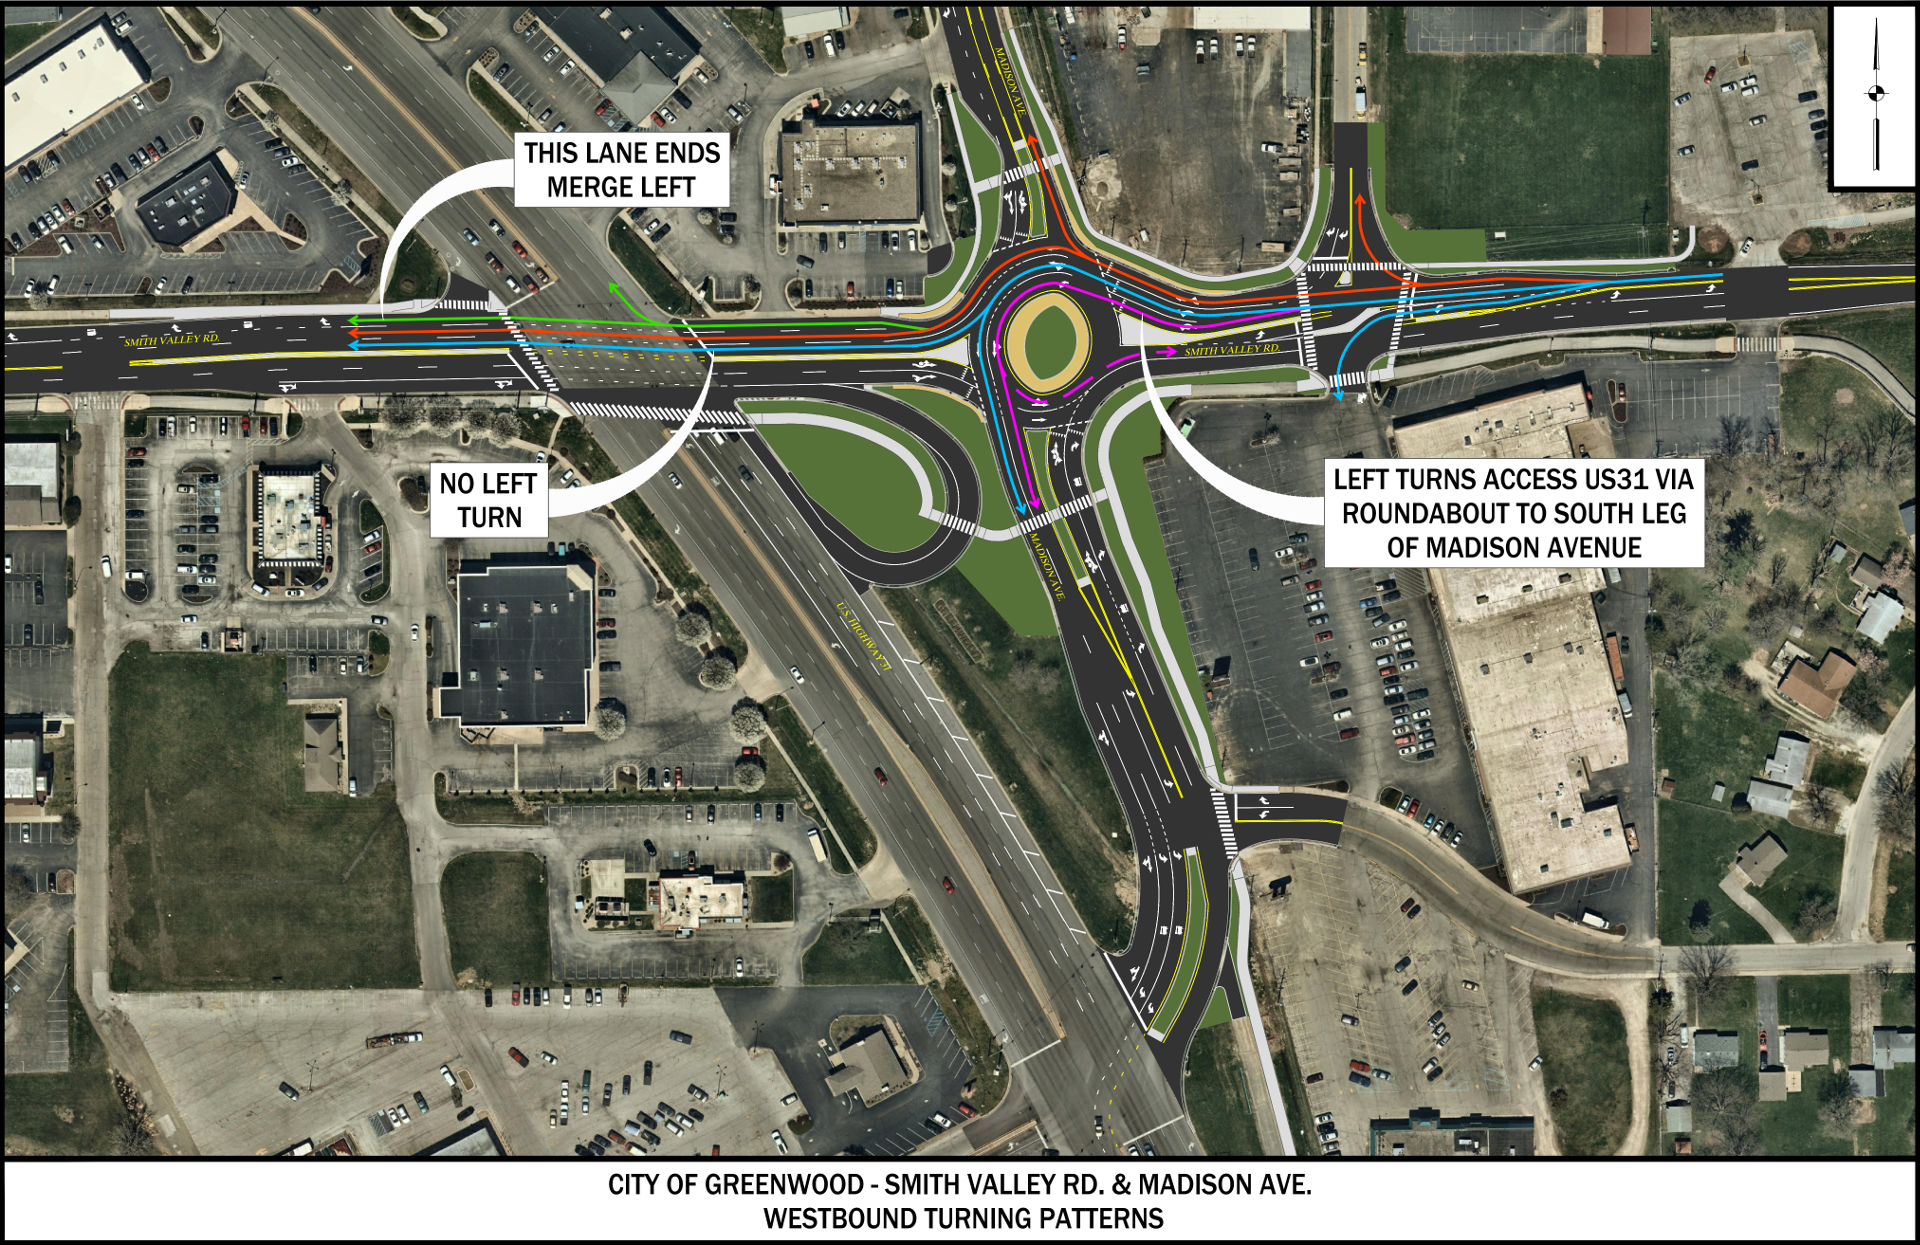 Madison/Smith Valley Roundabout - Westbound Traffic